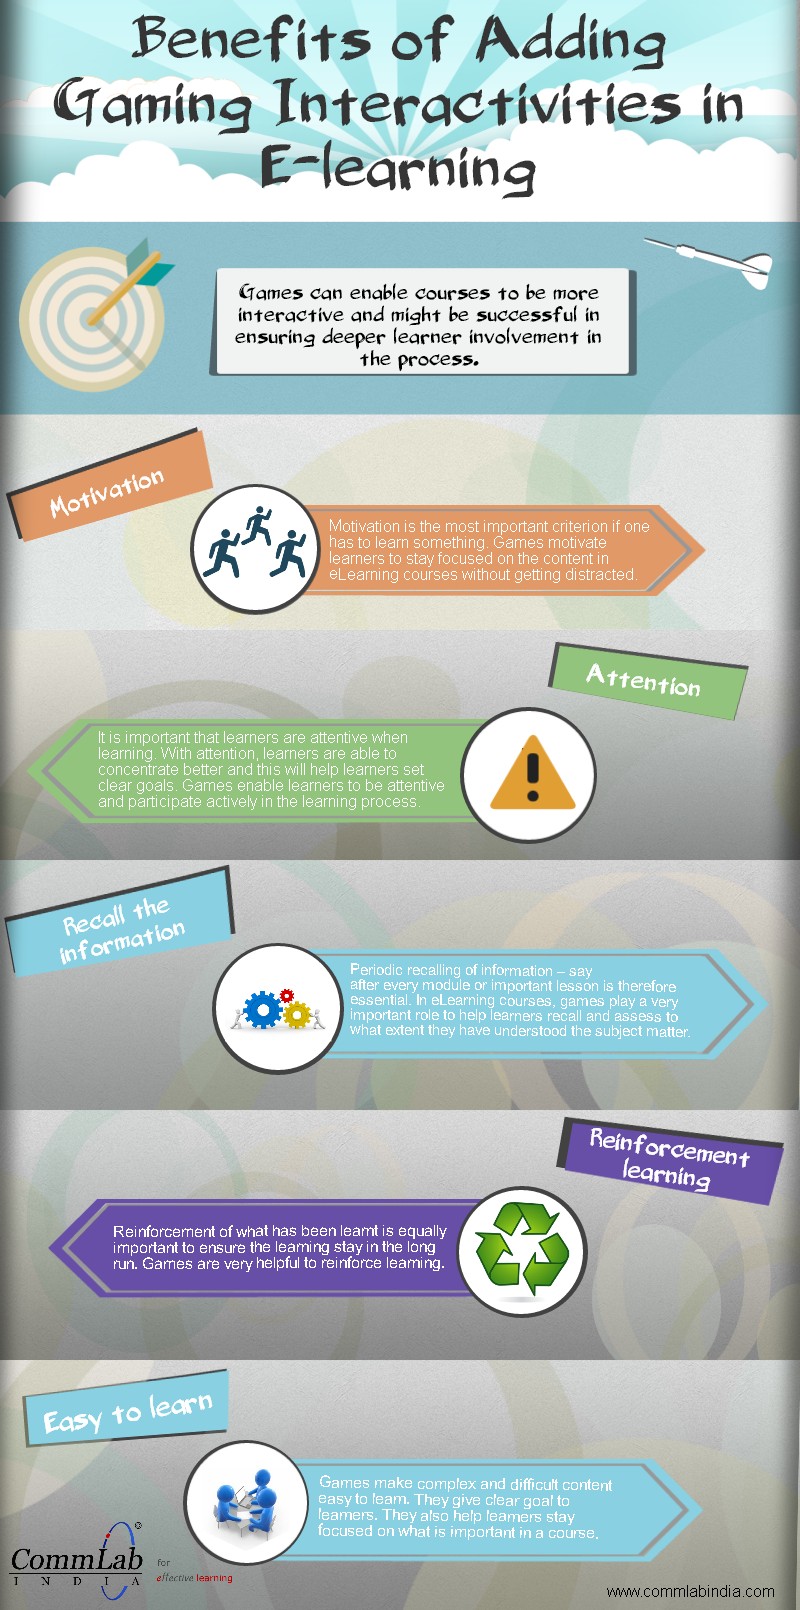 Benefits of Adding Game-Based Interactivities in E-learning – An Infographic